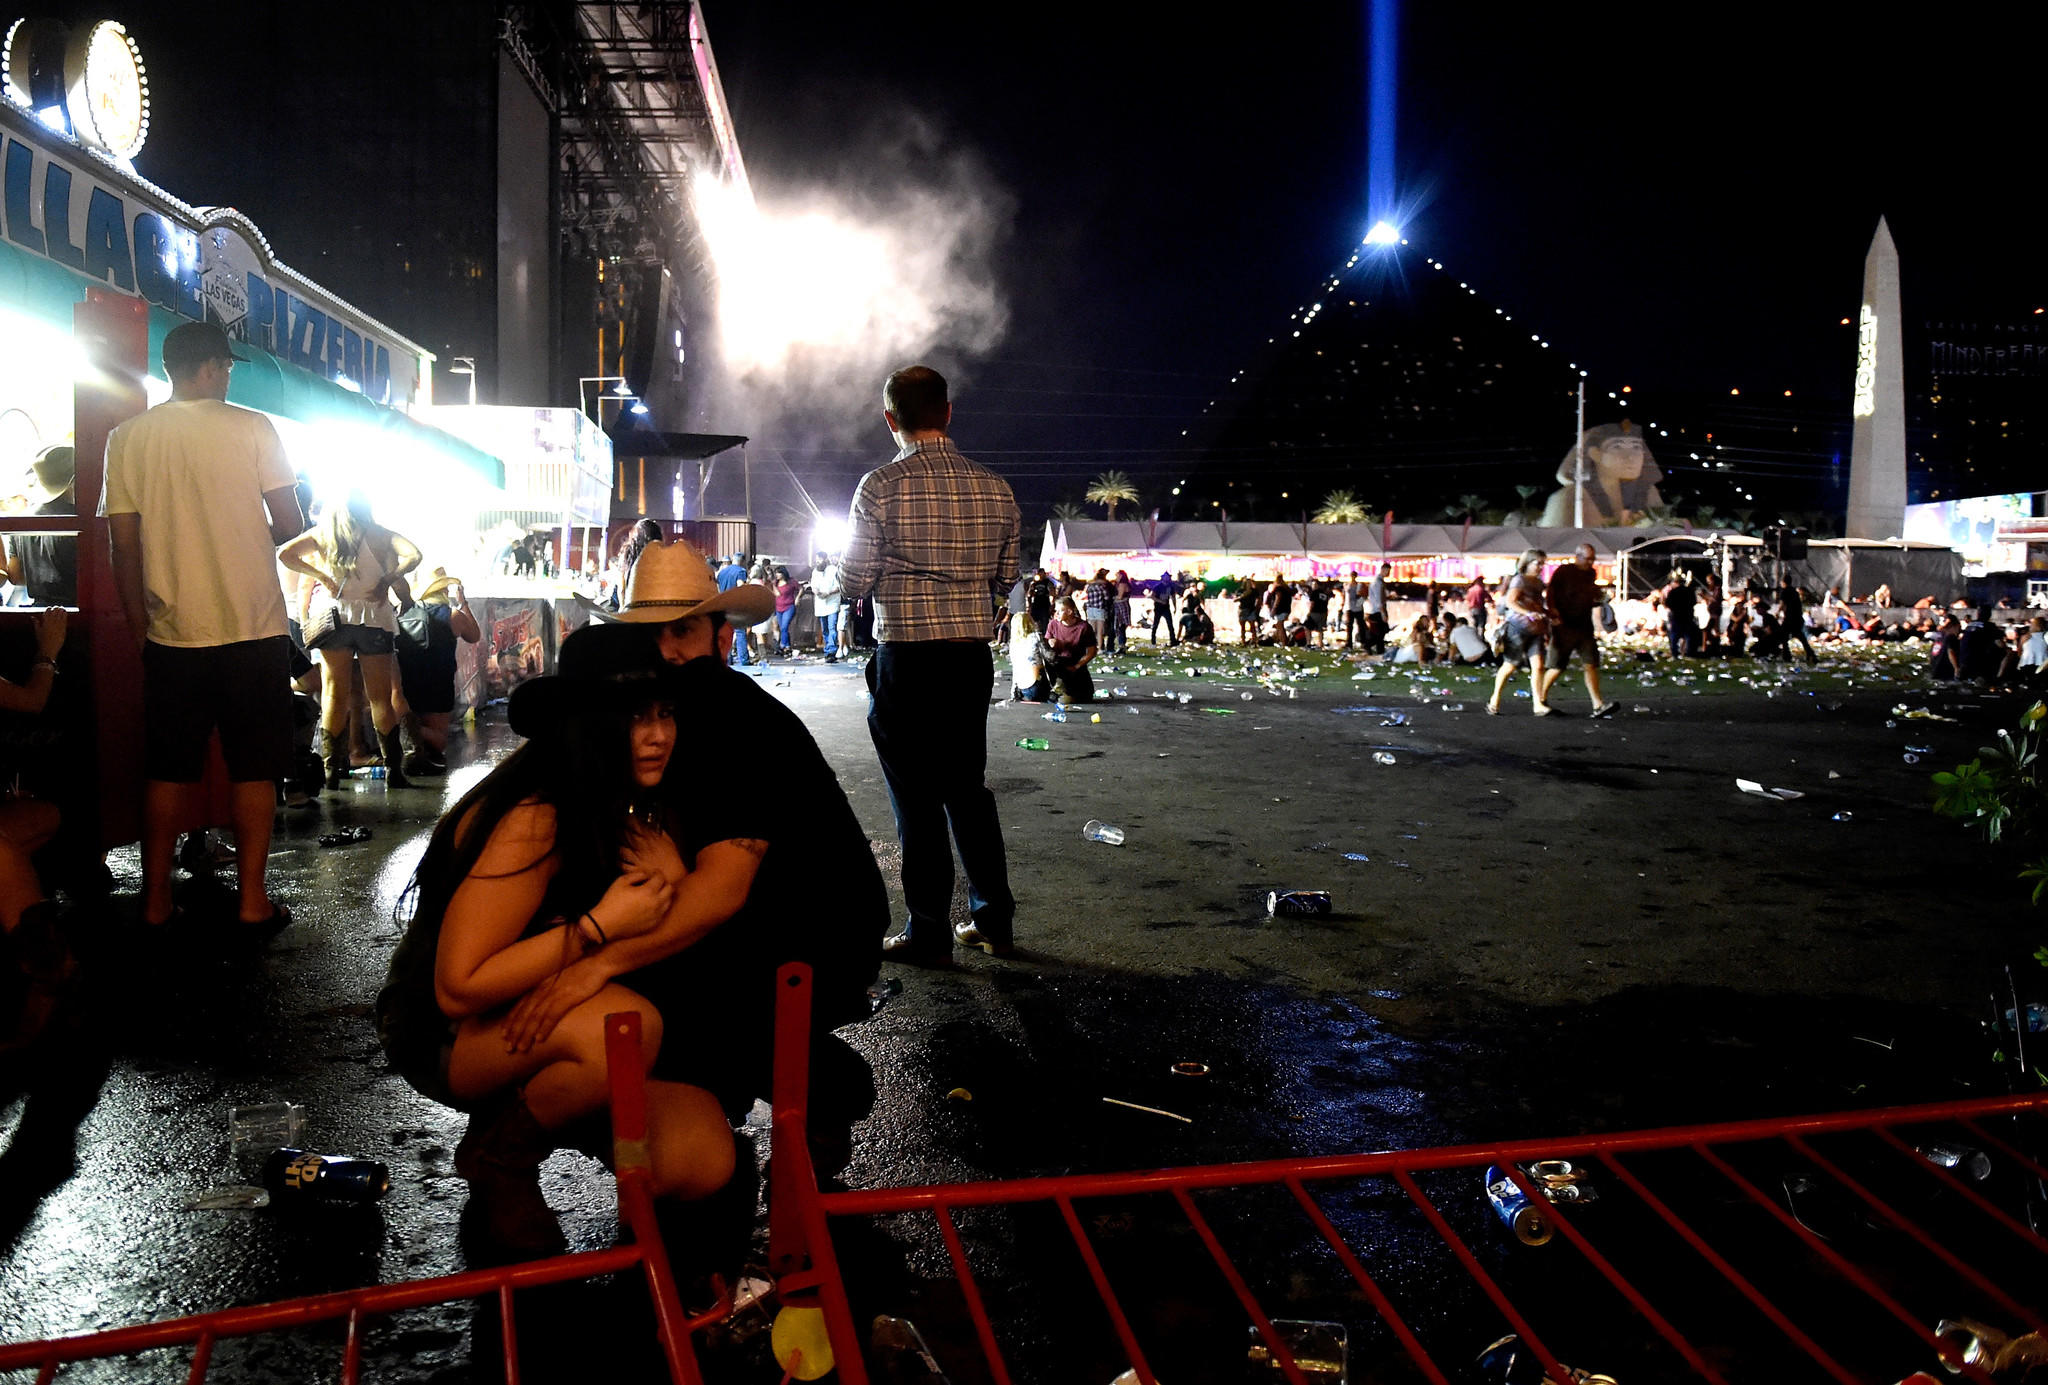 People take cover at the Route 91 Harvest country music festival in Las Vegas on Oct. 1 after gunfire was heard. (David Becker / Getty Images)